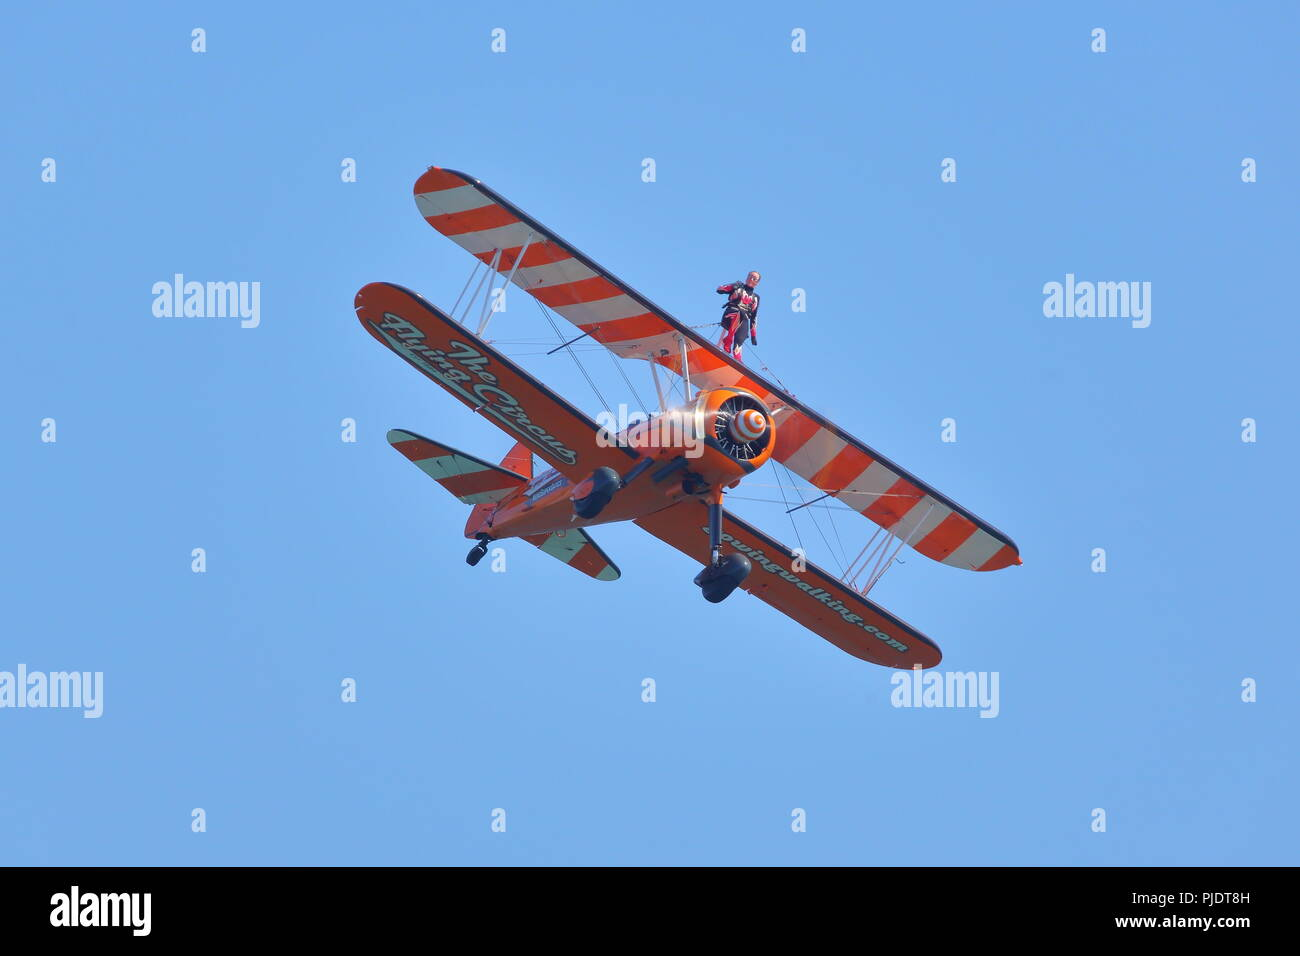 The Flying Circus Wingwalkers at the Bournemouth Air Festival 2018, Bournemouth, UK - Stock Image